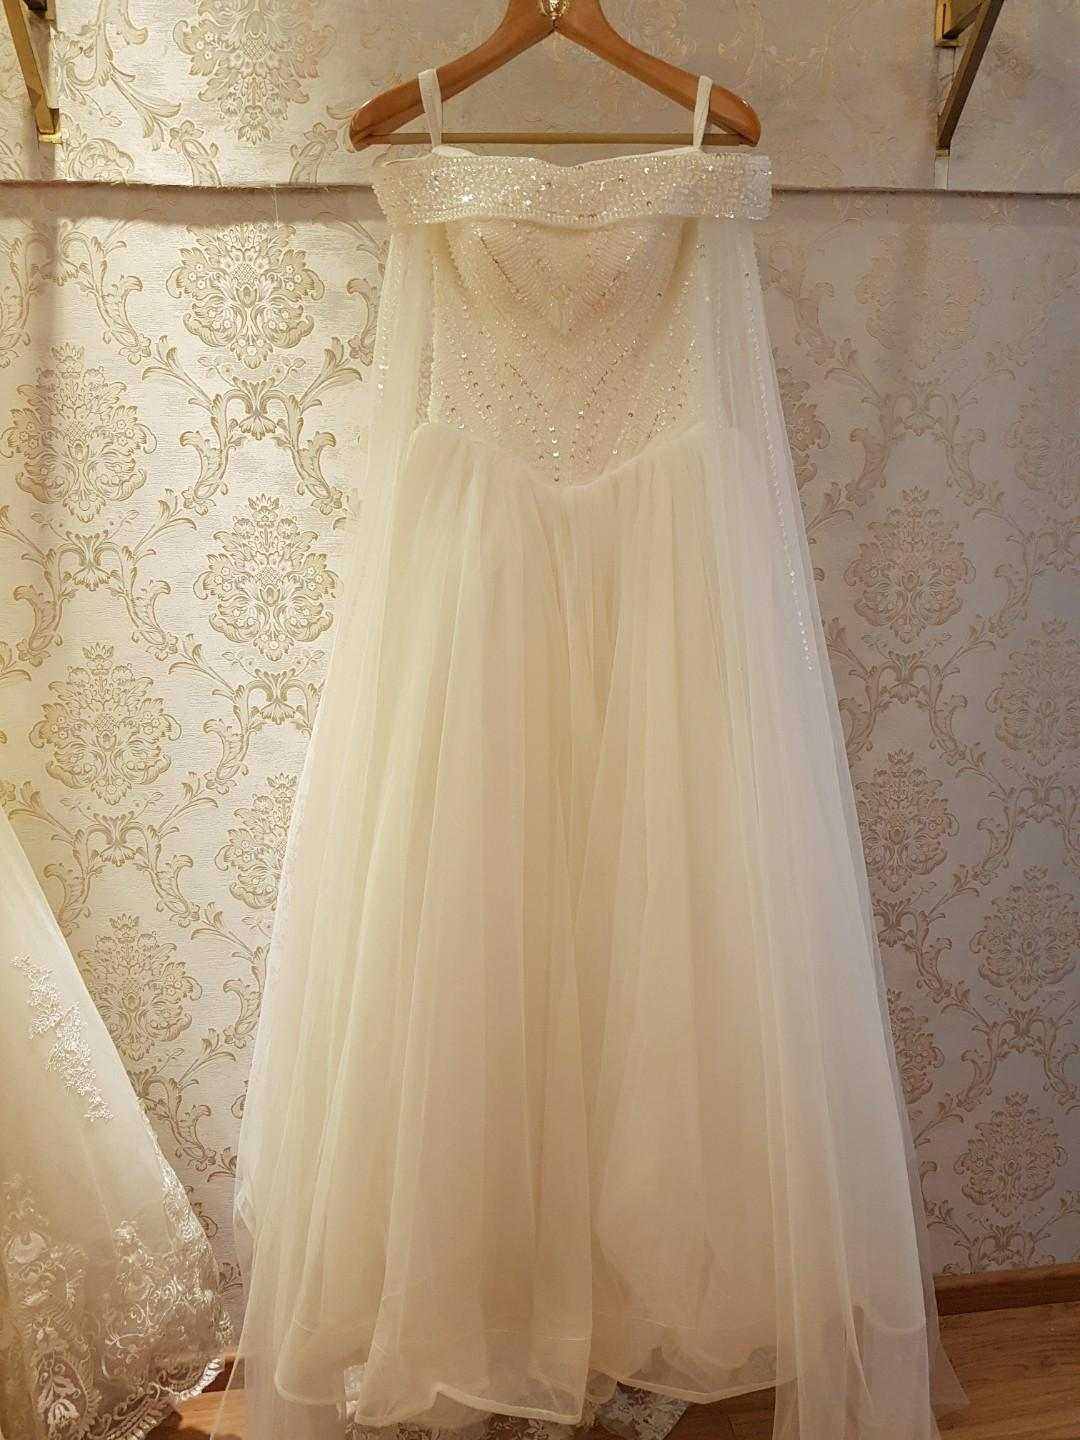 $100 moving out sales gown